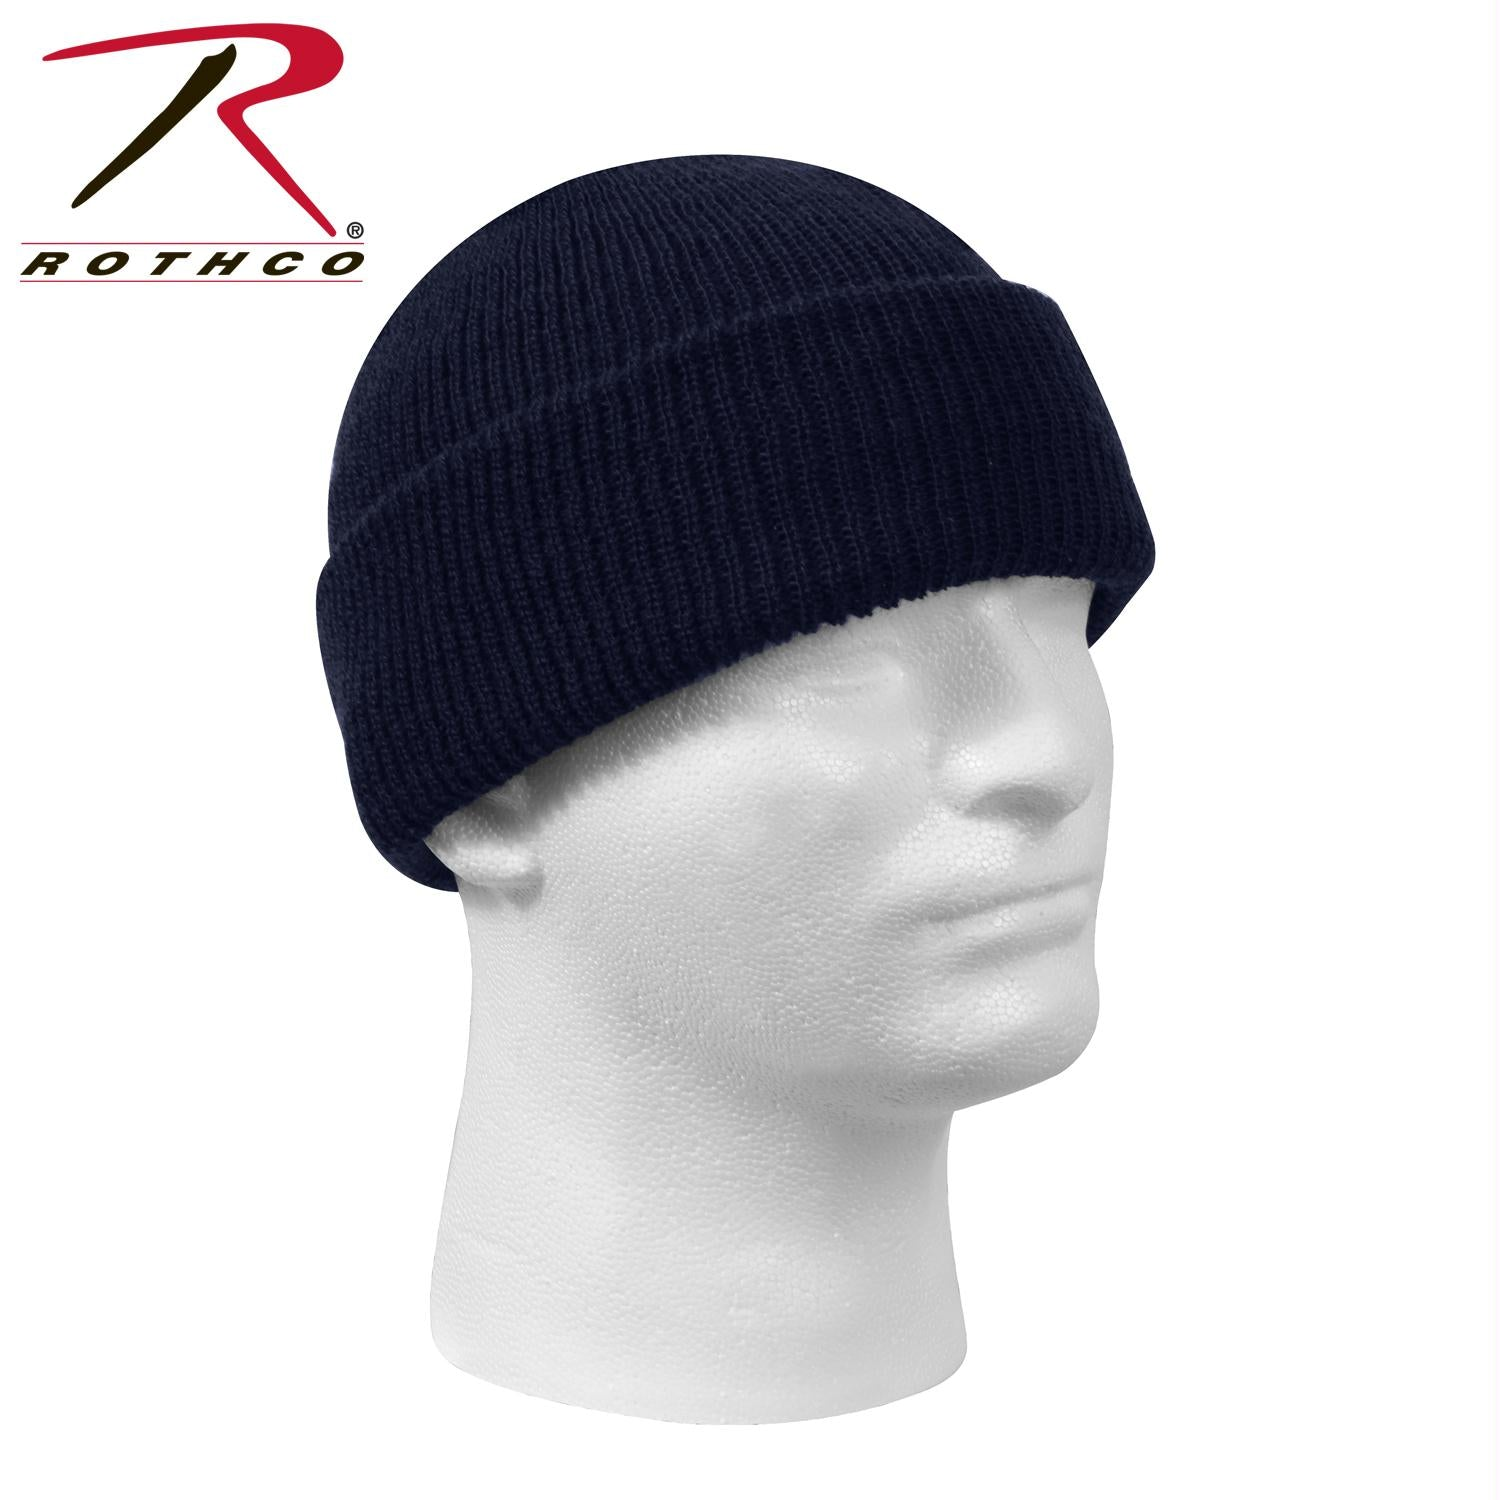 Genuine G.I. Wool Watch Cap - Navy Blue